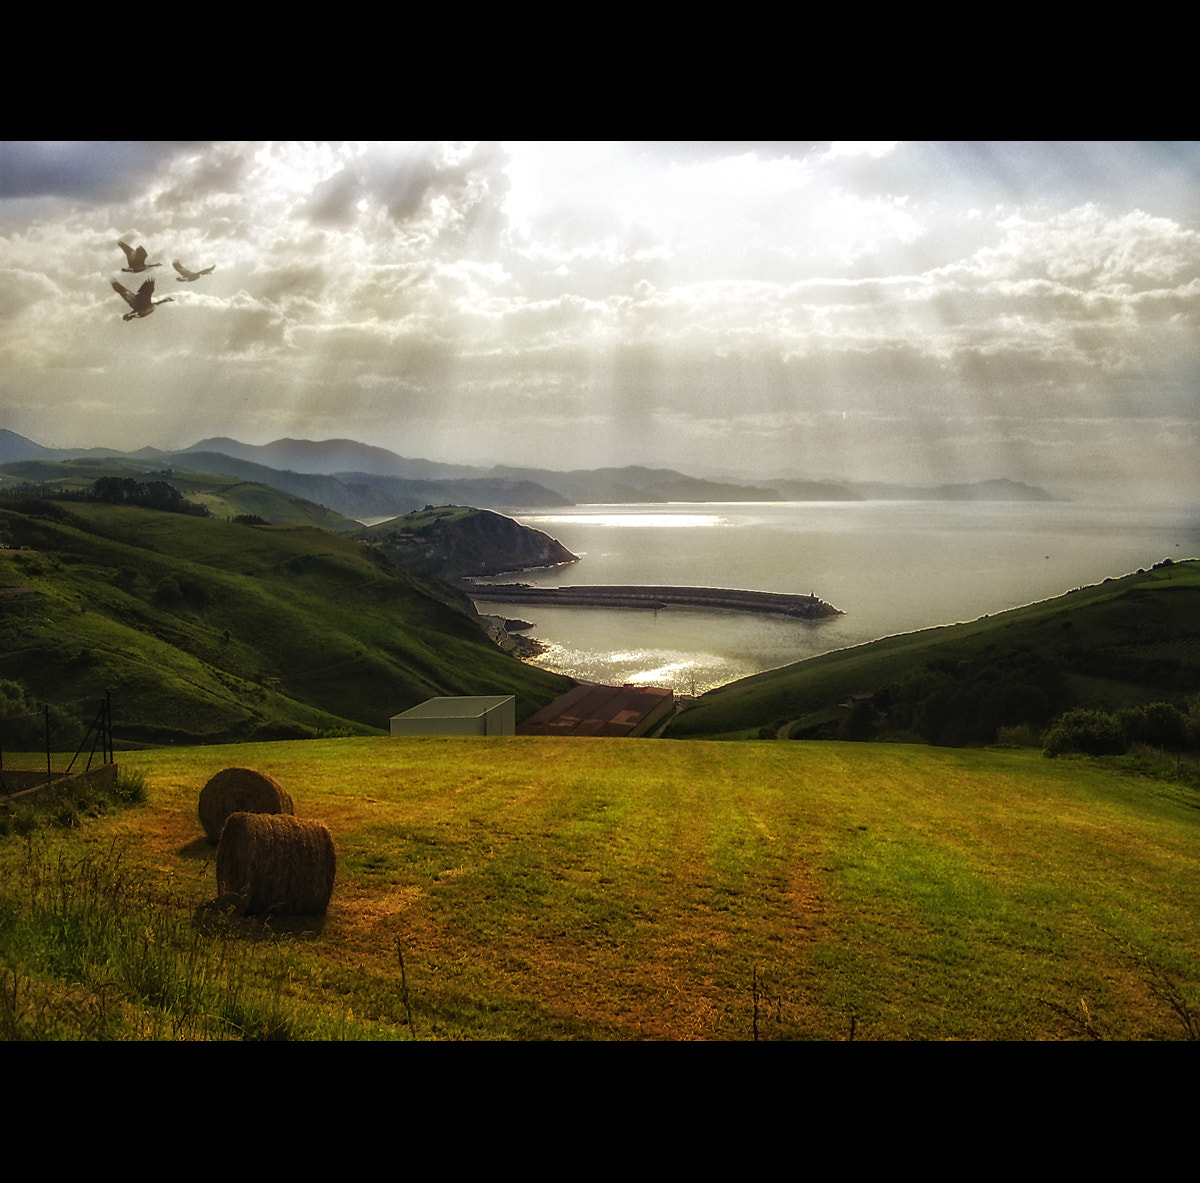 Photograph asturias 2 by feniche  fernando on 500px